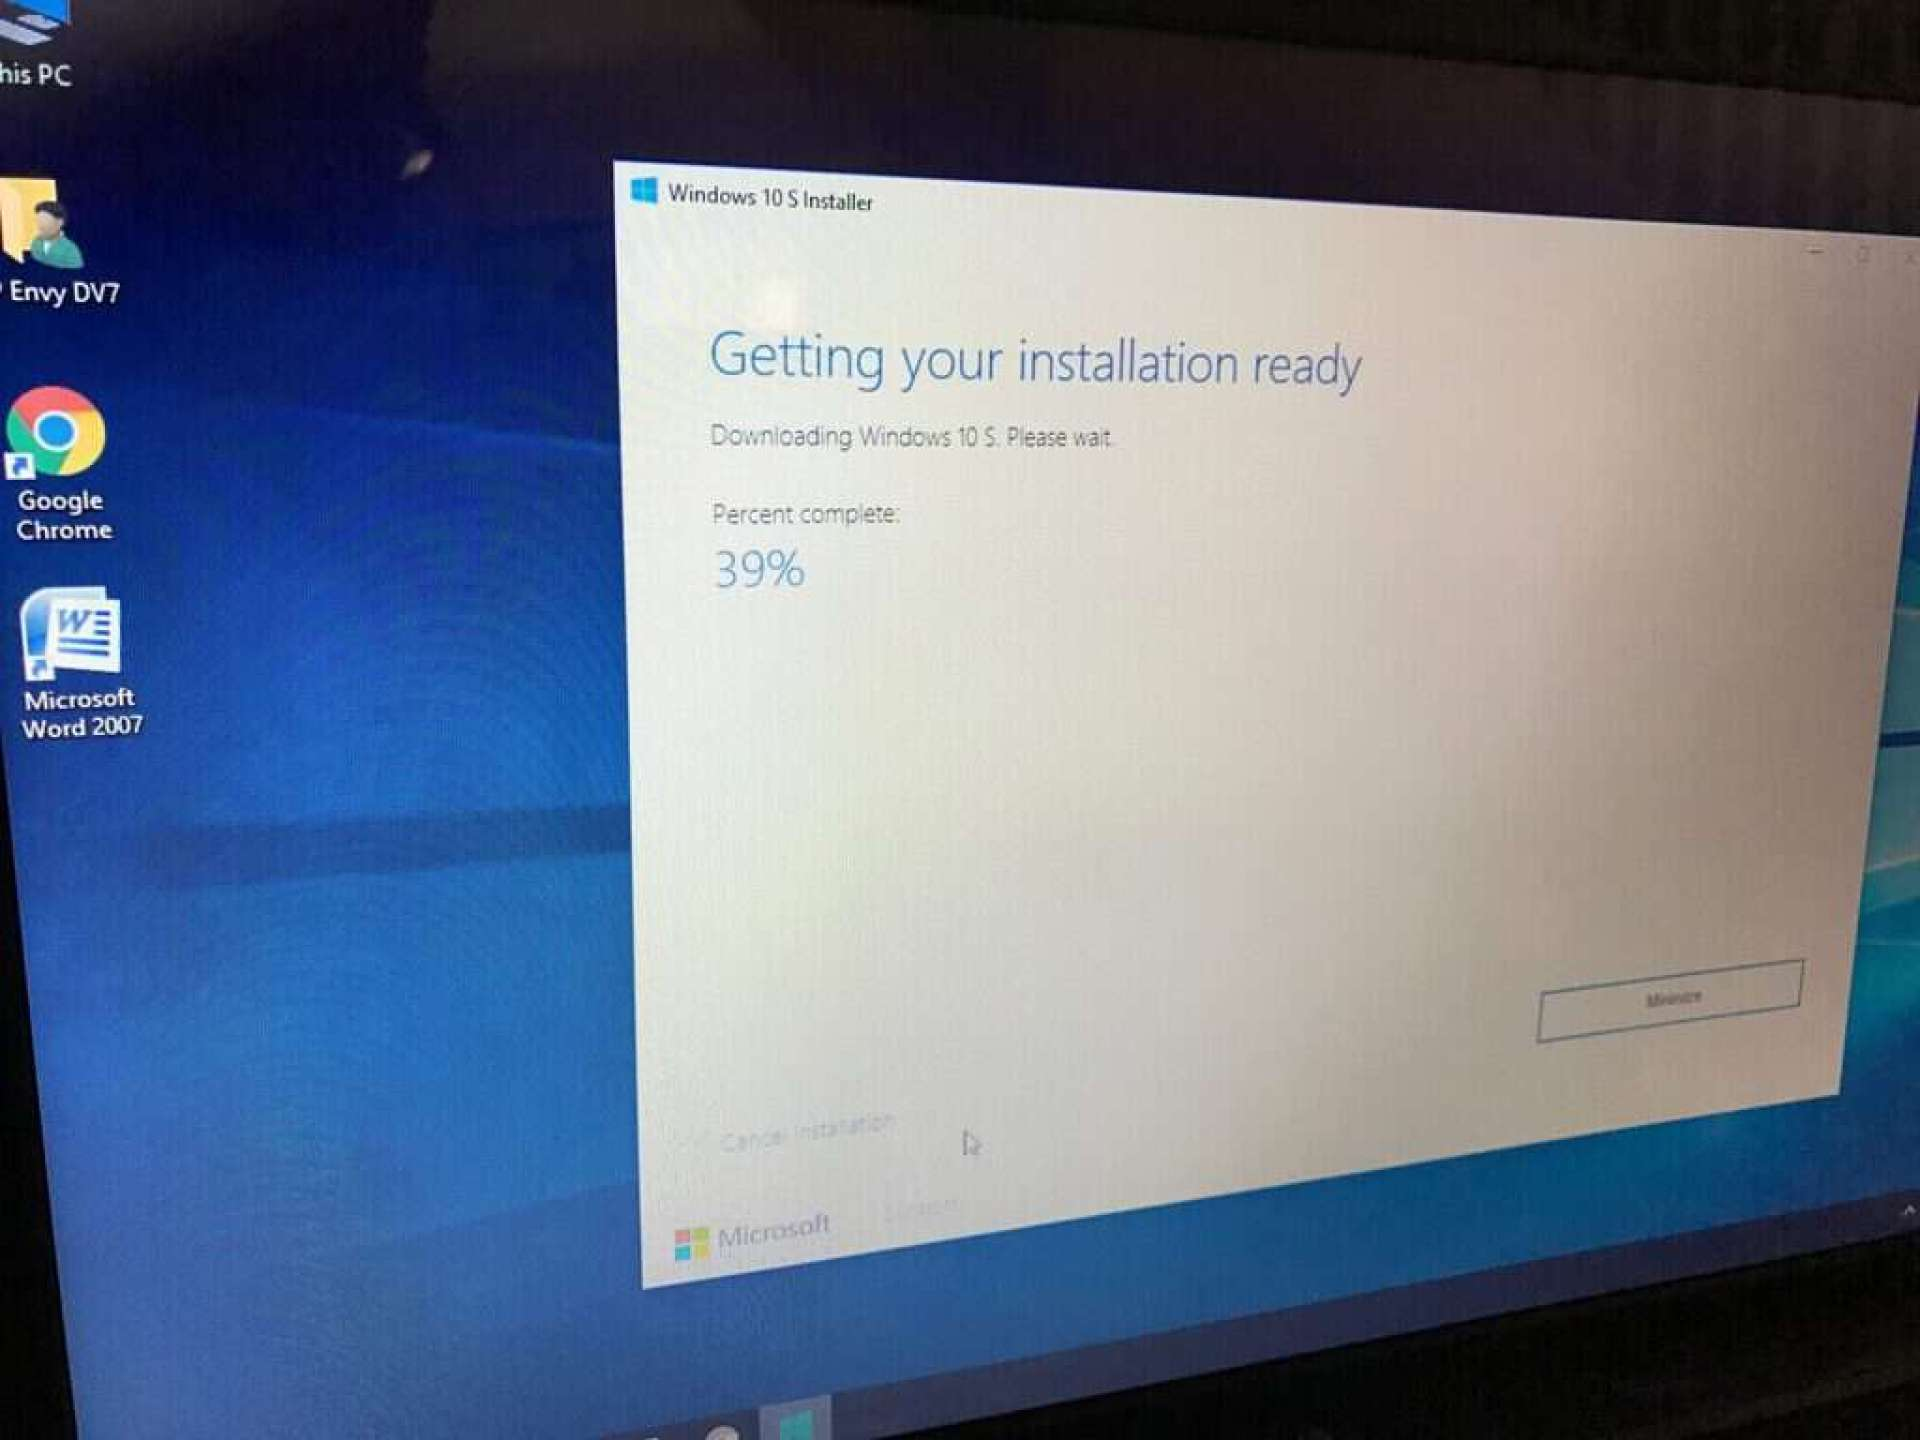 Here is how you can download and install Windows 10 S OnMSFT com